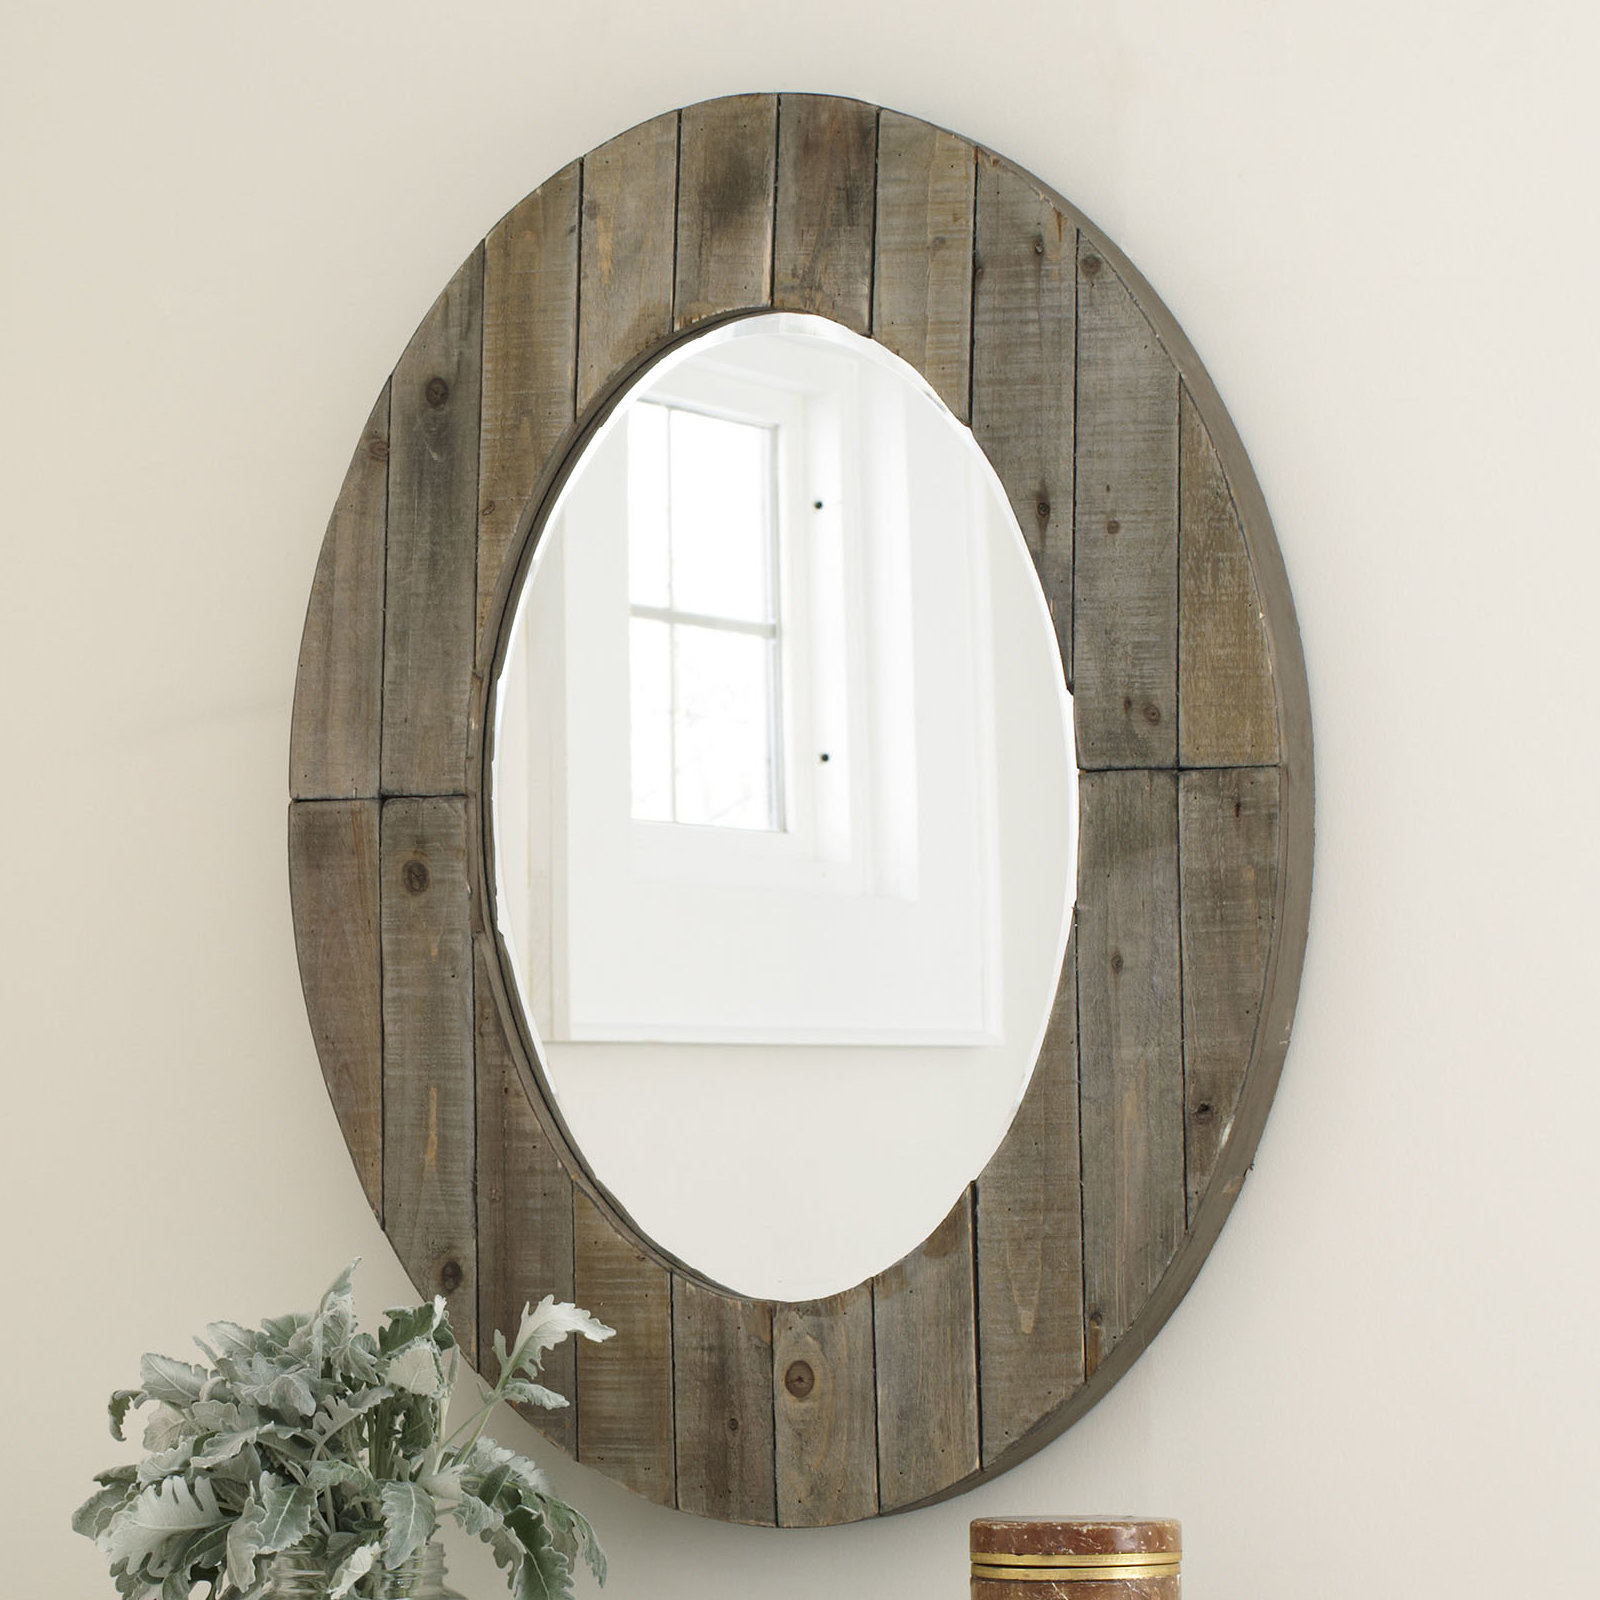 Newson Oval Wall Mirror With Booth Reclaimed Wall Mirrors Accent (Image 13 of 20)